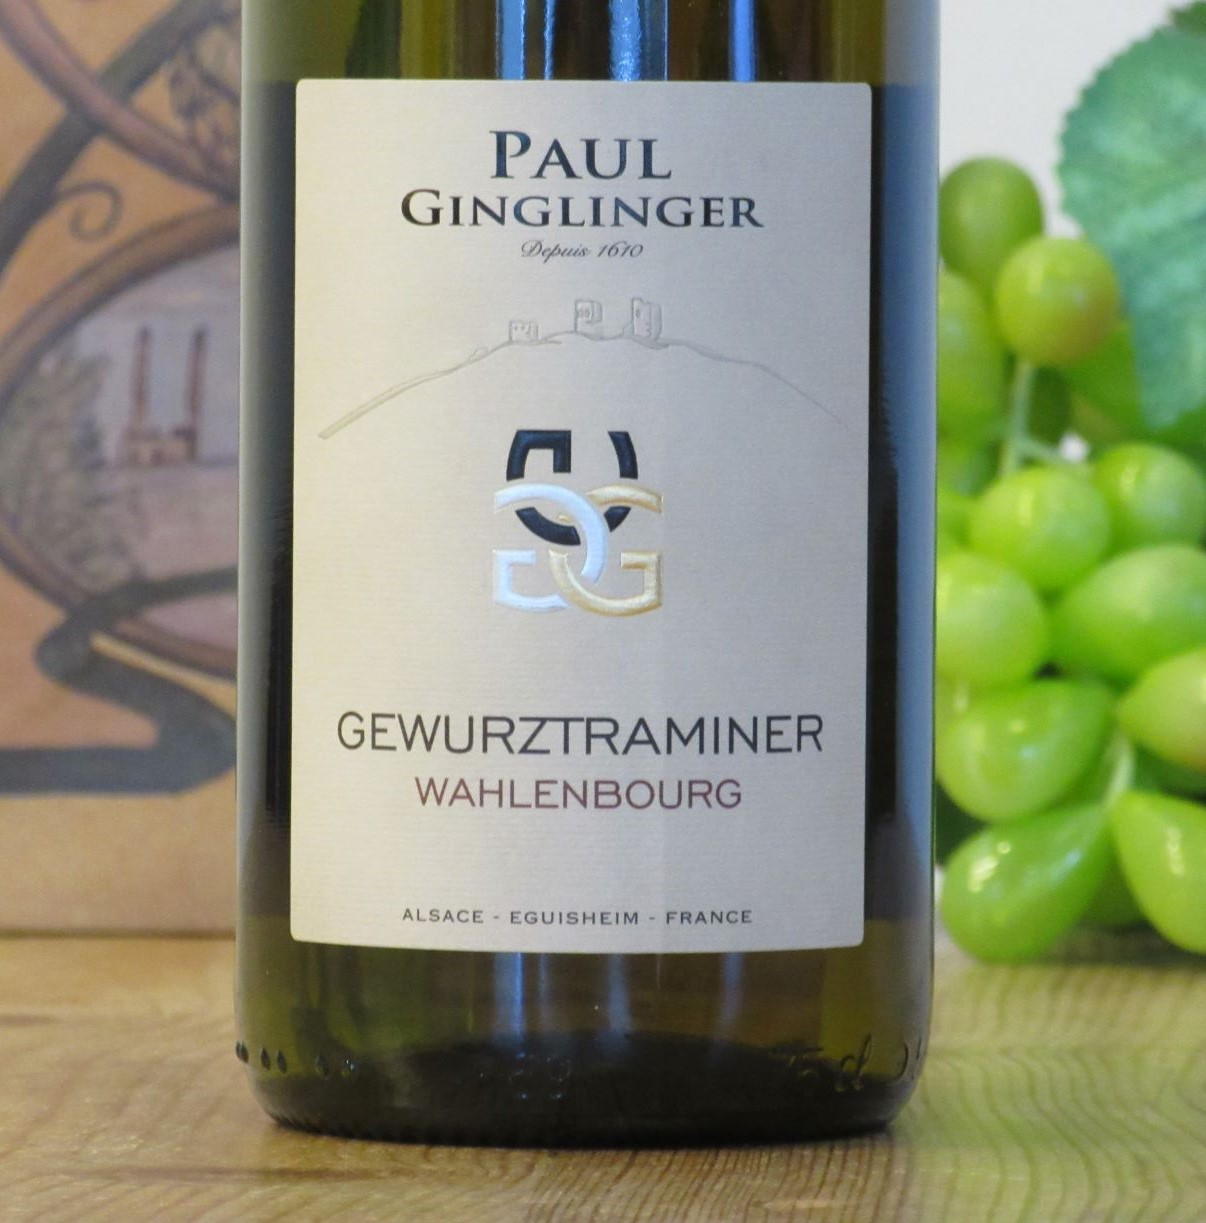 Paul Ginglinger Gewurztraminer